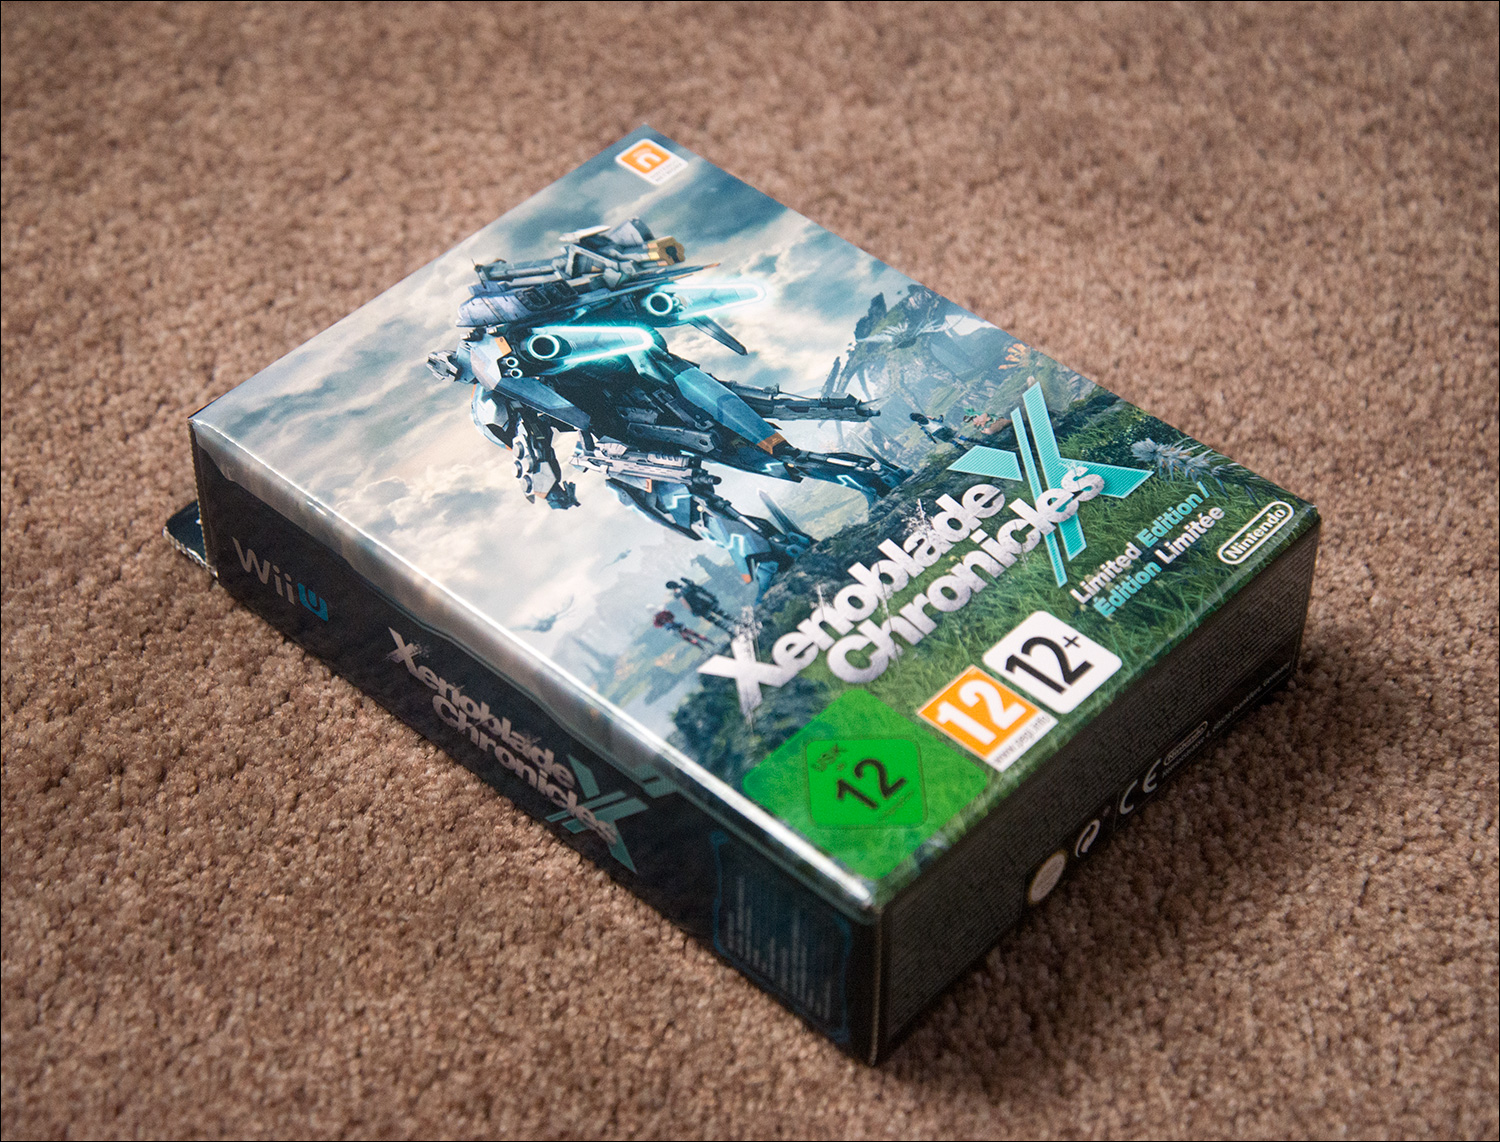 Xenoblade Chronicles X Limited Edition, contains steelbook, artbook, double-sided poster and map